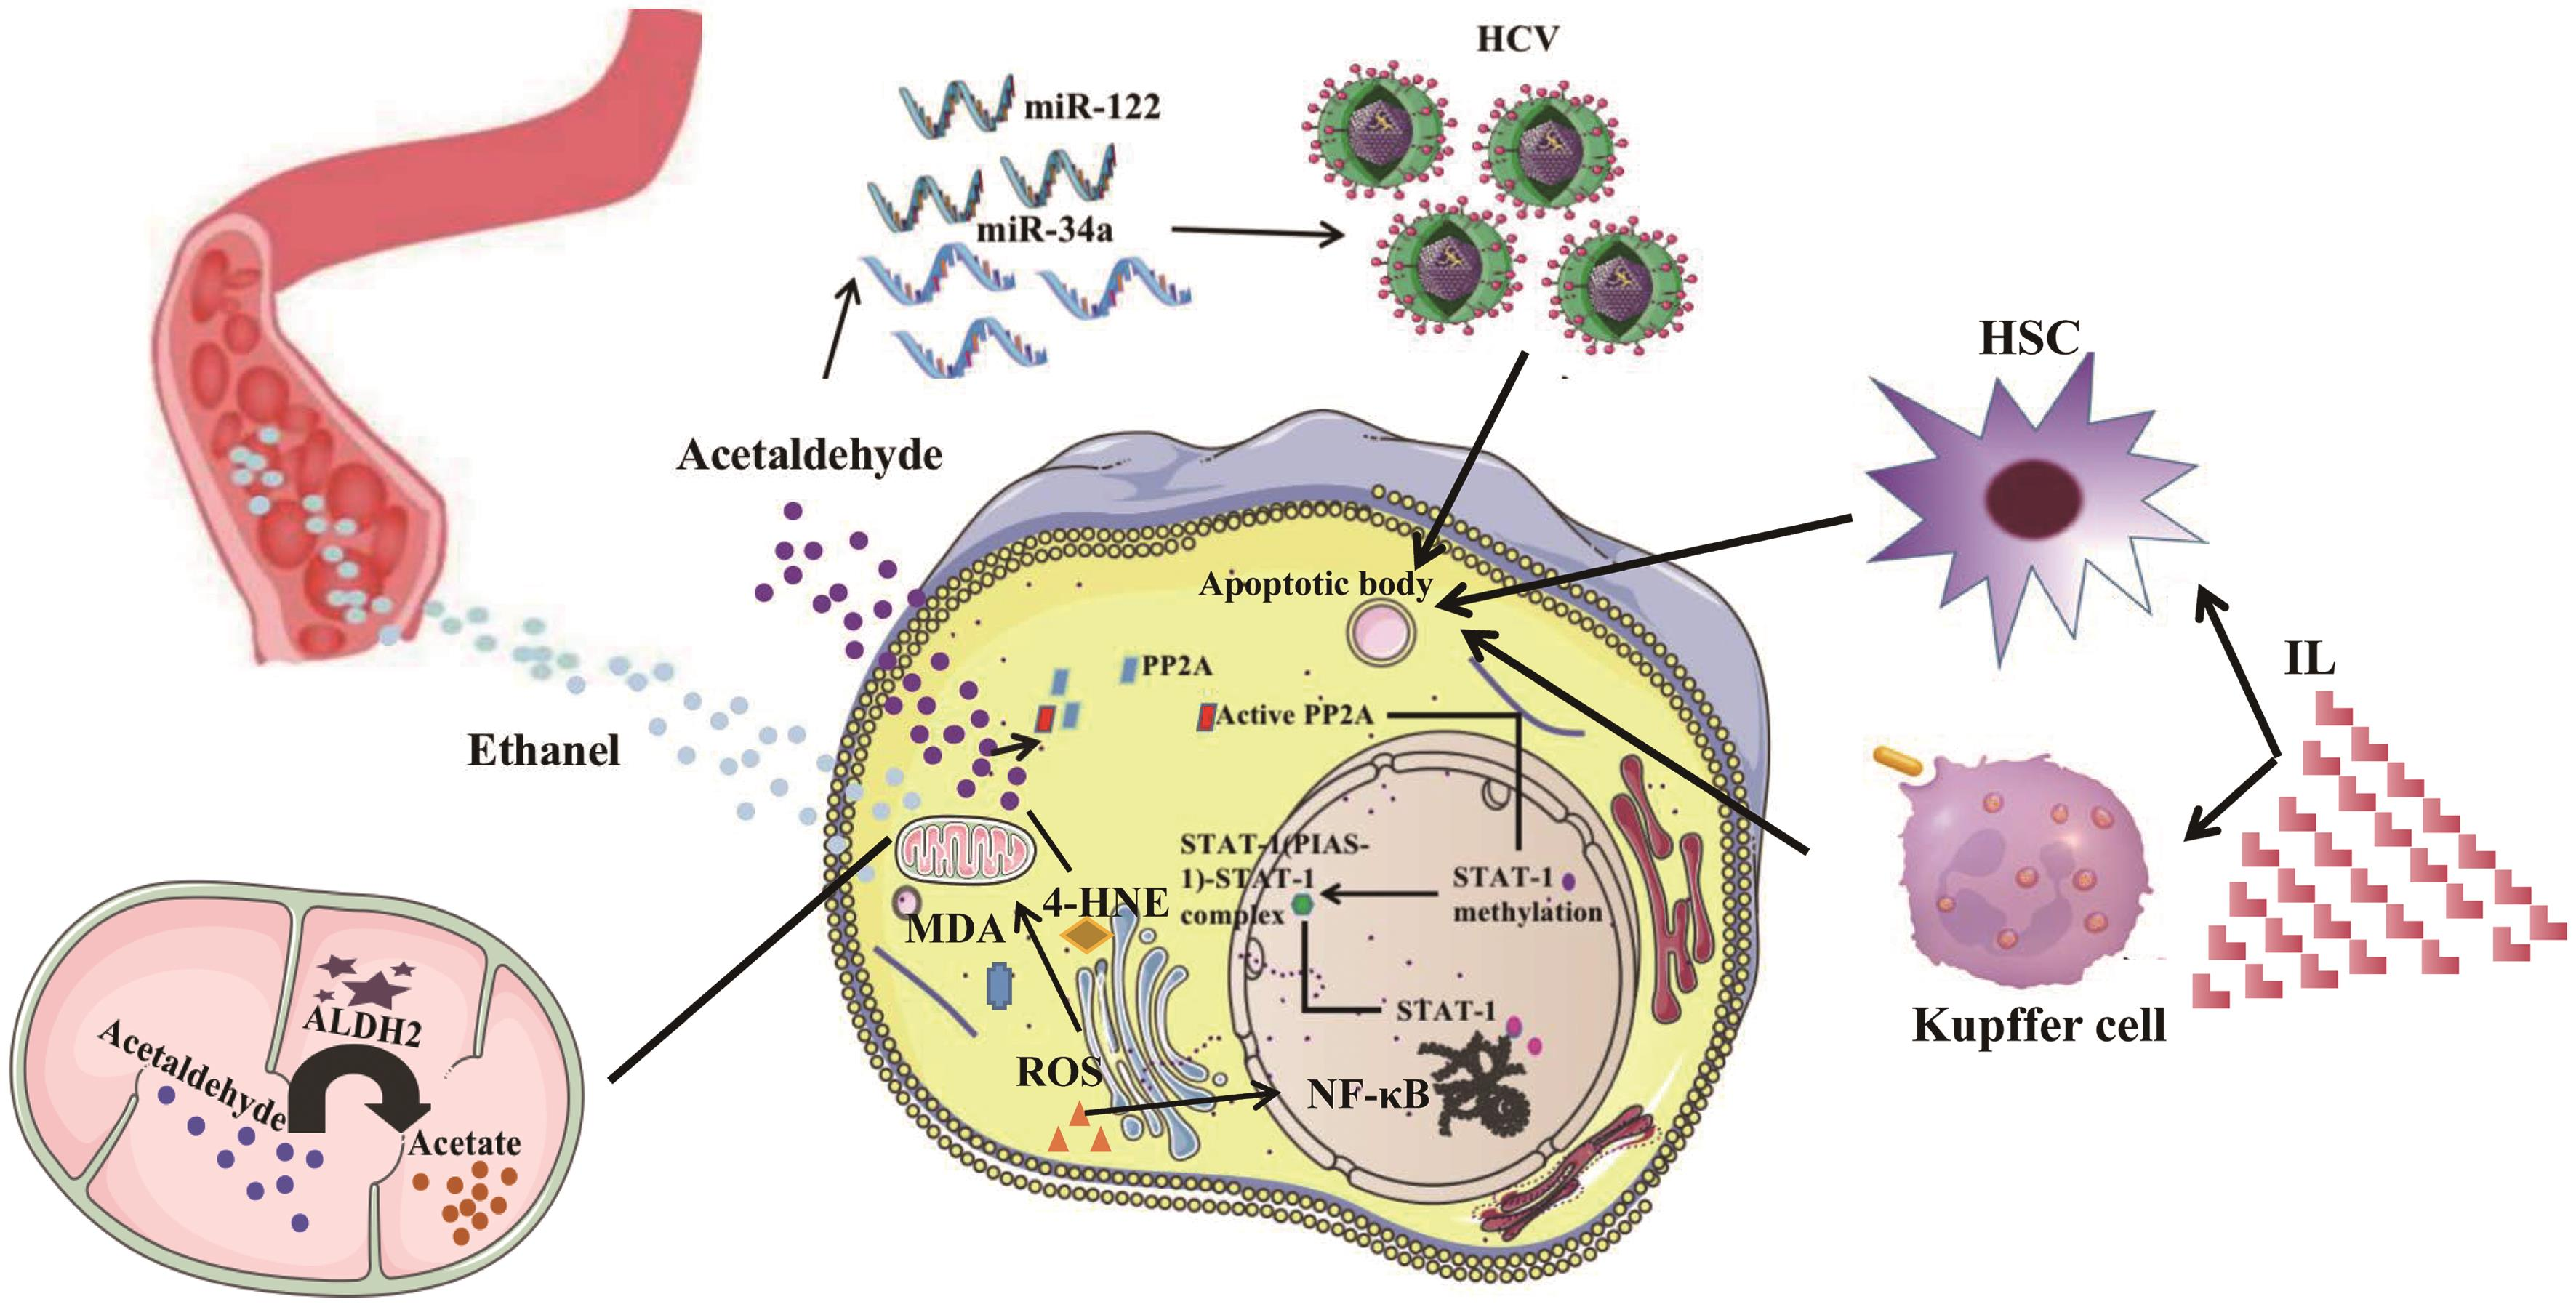 Effect of ALDH2 in HCV infection and toxic aldehydes.